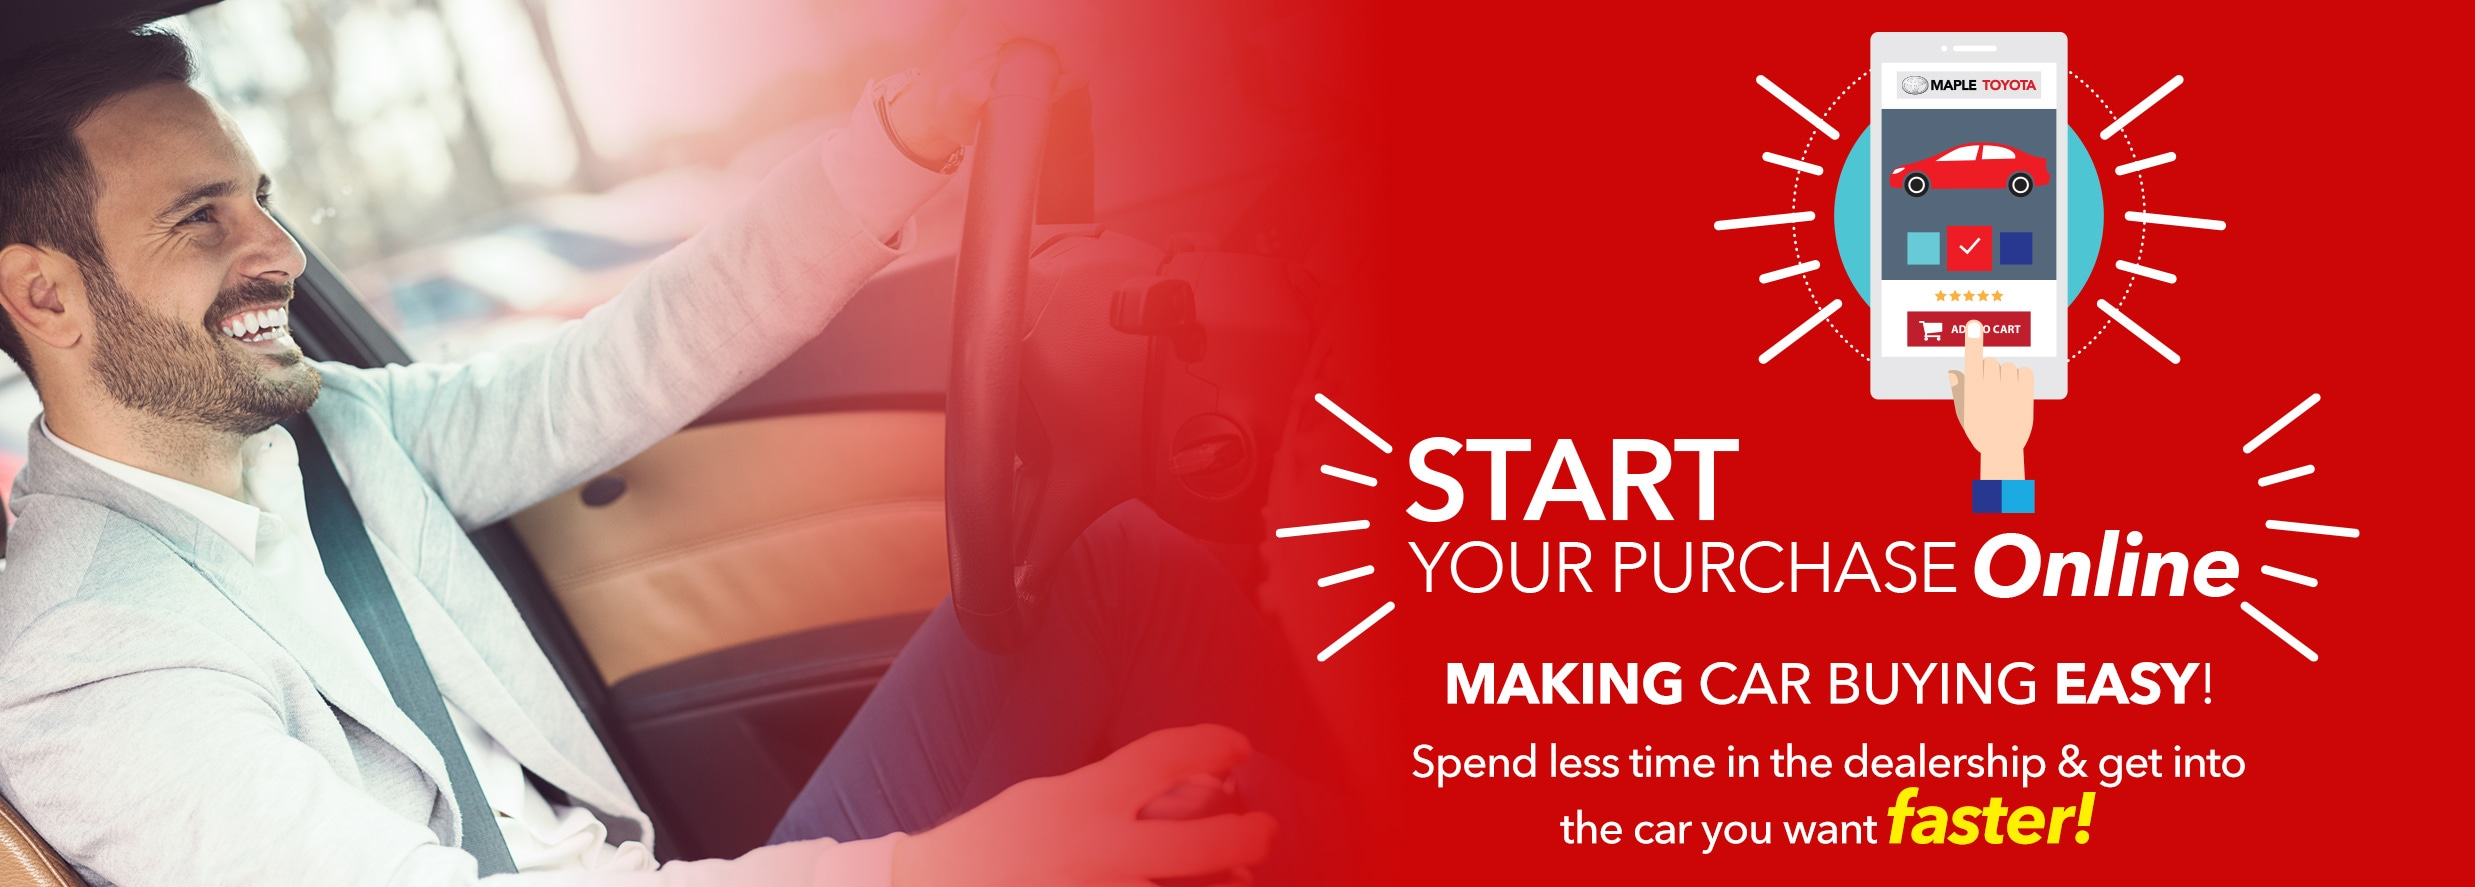 Start your Purchase Online - Maple Toyota